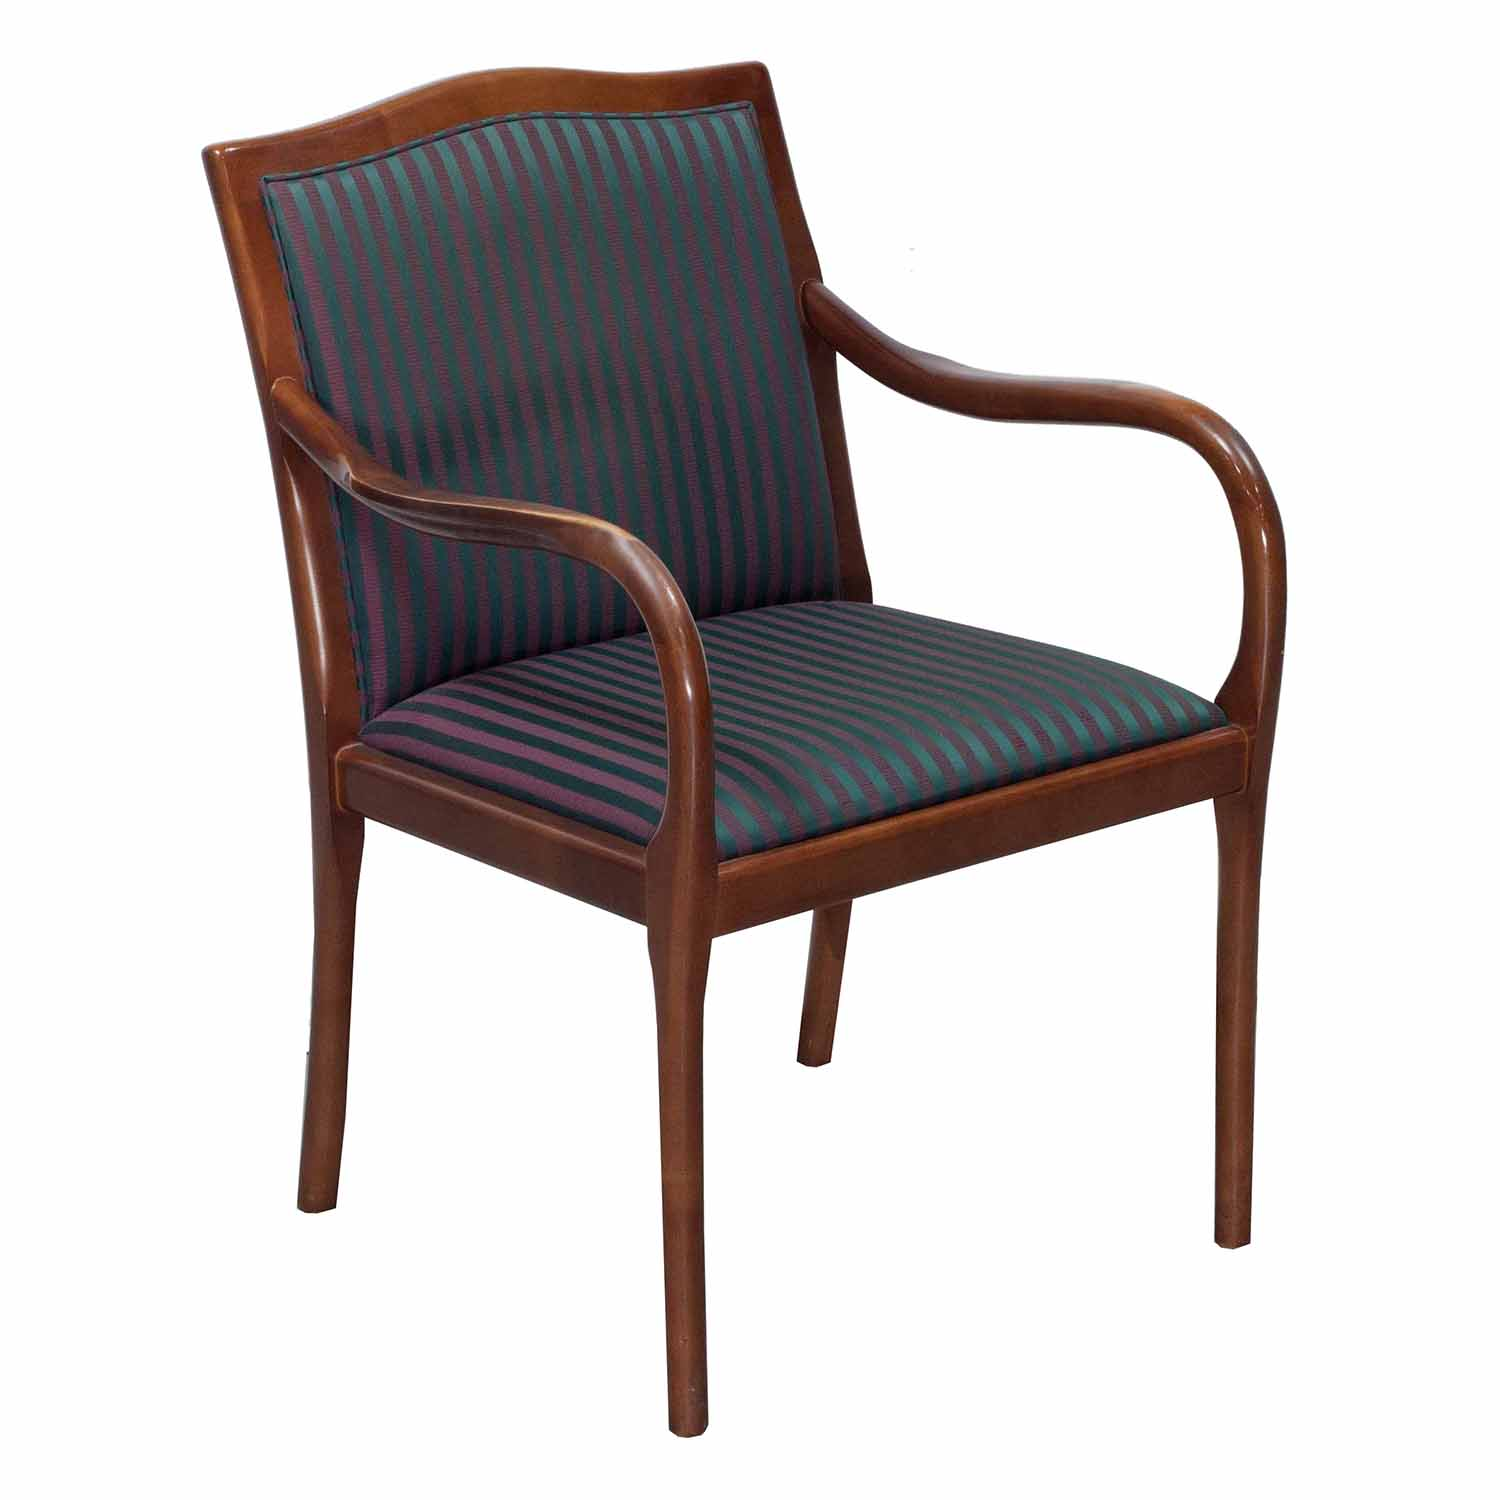 Pattern Chair Bernhardt Used Wood Side Chair Striped Pattern National